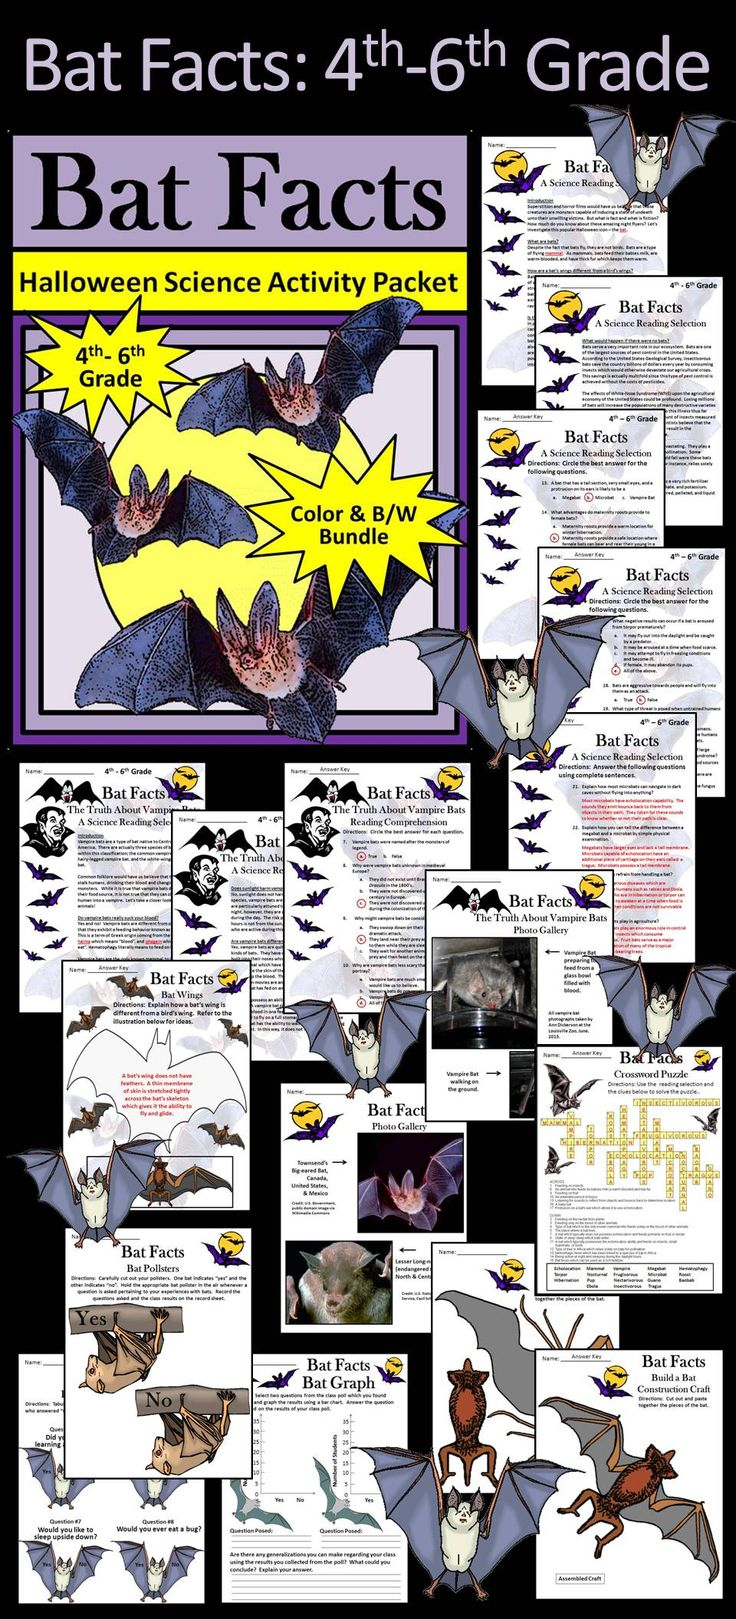 Bat Facts 4th - 6th Grade Activity Packet Bundle: Halloween activity packet in which your students will learn all about bats. Contents include: * Reading selections - Bat Facts &The Truth About Vampire Bats * Comprehension quizzes - Bat Facts & The Truth About Vampire Bats * Bat & Vampire Bat photo gallery * Crossword puzzle * Bat division coloring sheet * Bat class poll * Two bat construction craft activities * Four coloring sheets * Answer keys #Bats #Halloween #Science #Activities